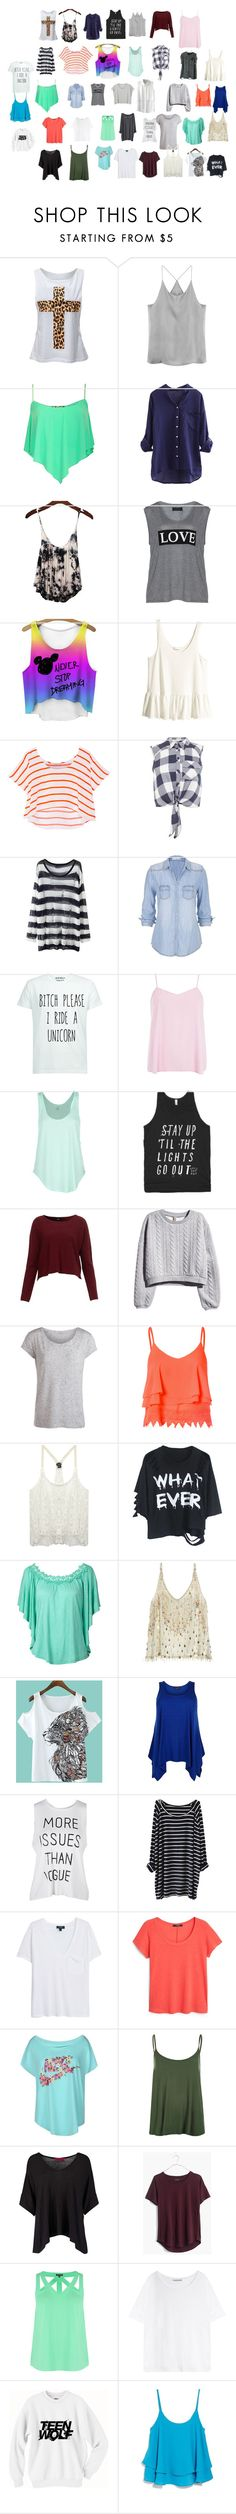 """cute tops"" by hopecutyorange ❤ liked on Polyvore featuring Carmakoma, H&M, Rebecca Minkoff, Miss Selfridge, maurices, Dorothy Perkins, Rip Curl, Pieces, Glamorous and Wet Seal"